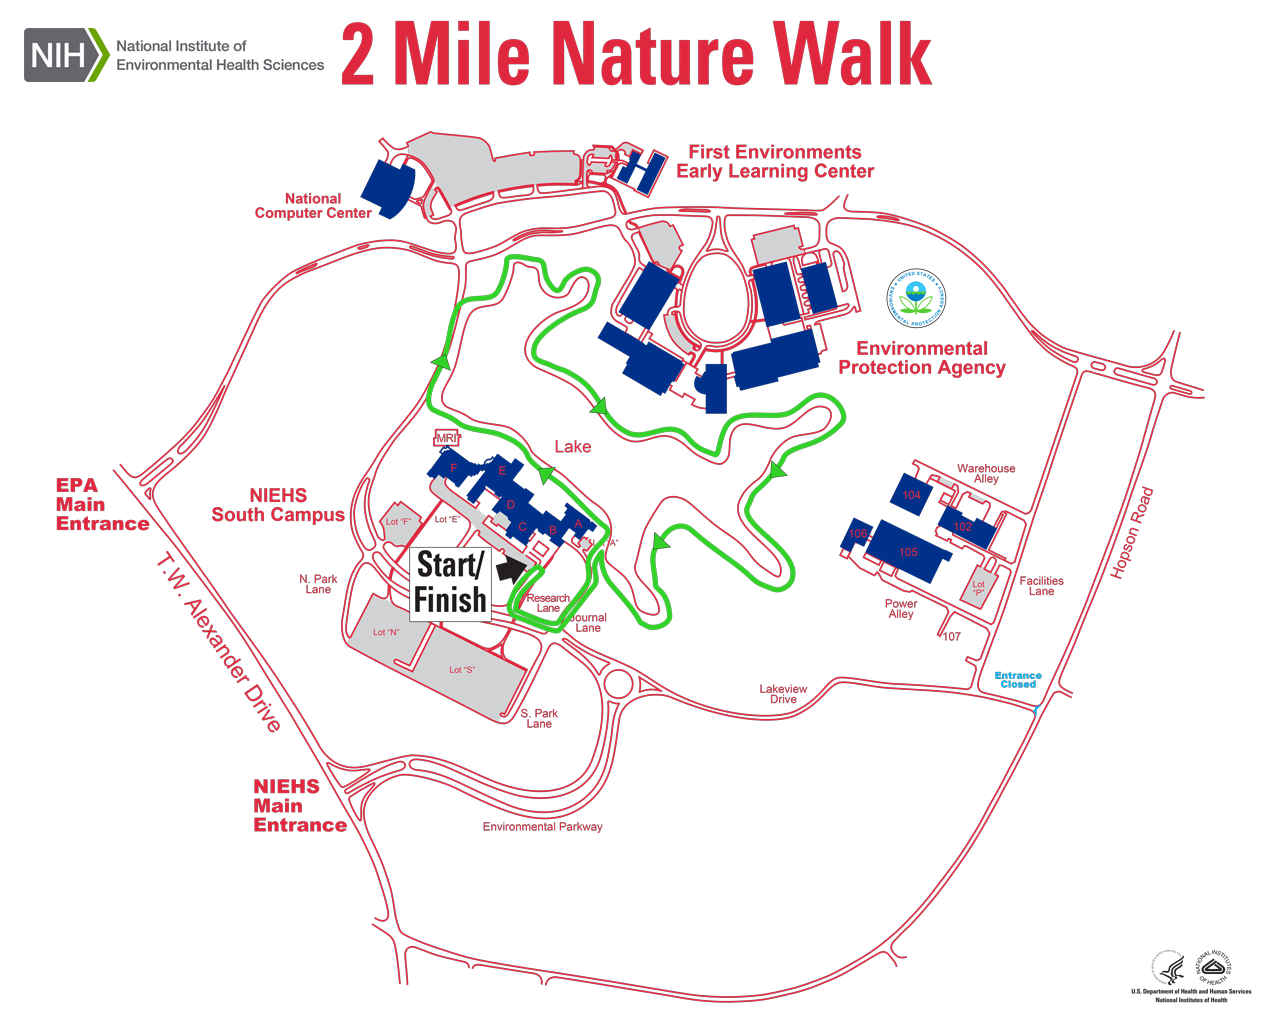 Map of the Nature Walk train around Discovery lake